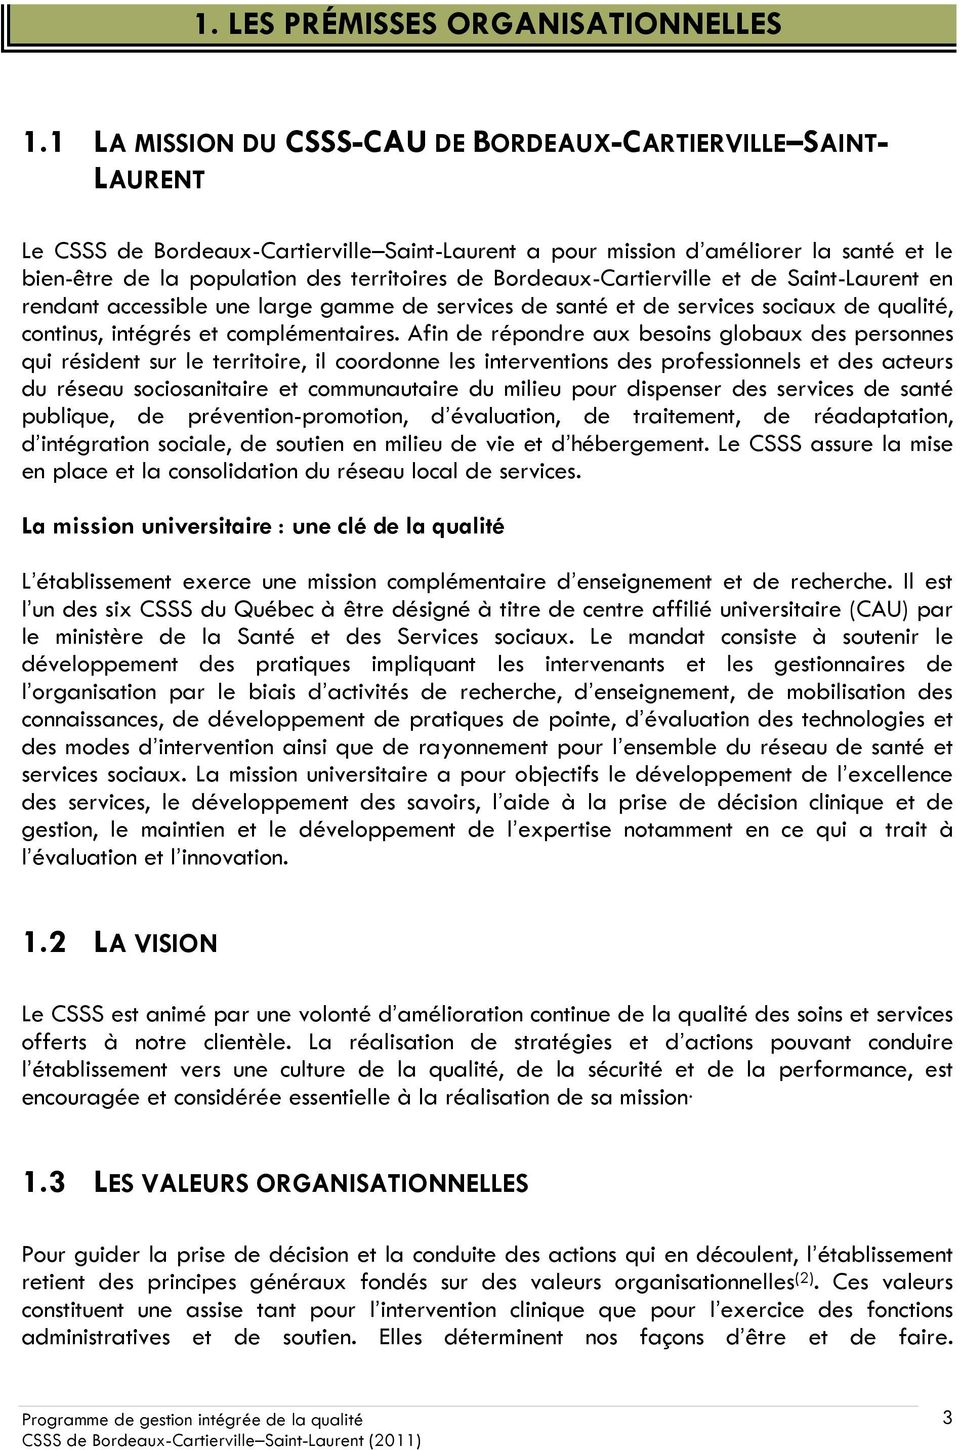 Bordeaux-Cartierville et de Saint-Laurent en rendant accessible une large gamme de services de santé et de services sociaux de qualité, continus, intégrés et complémentaires.